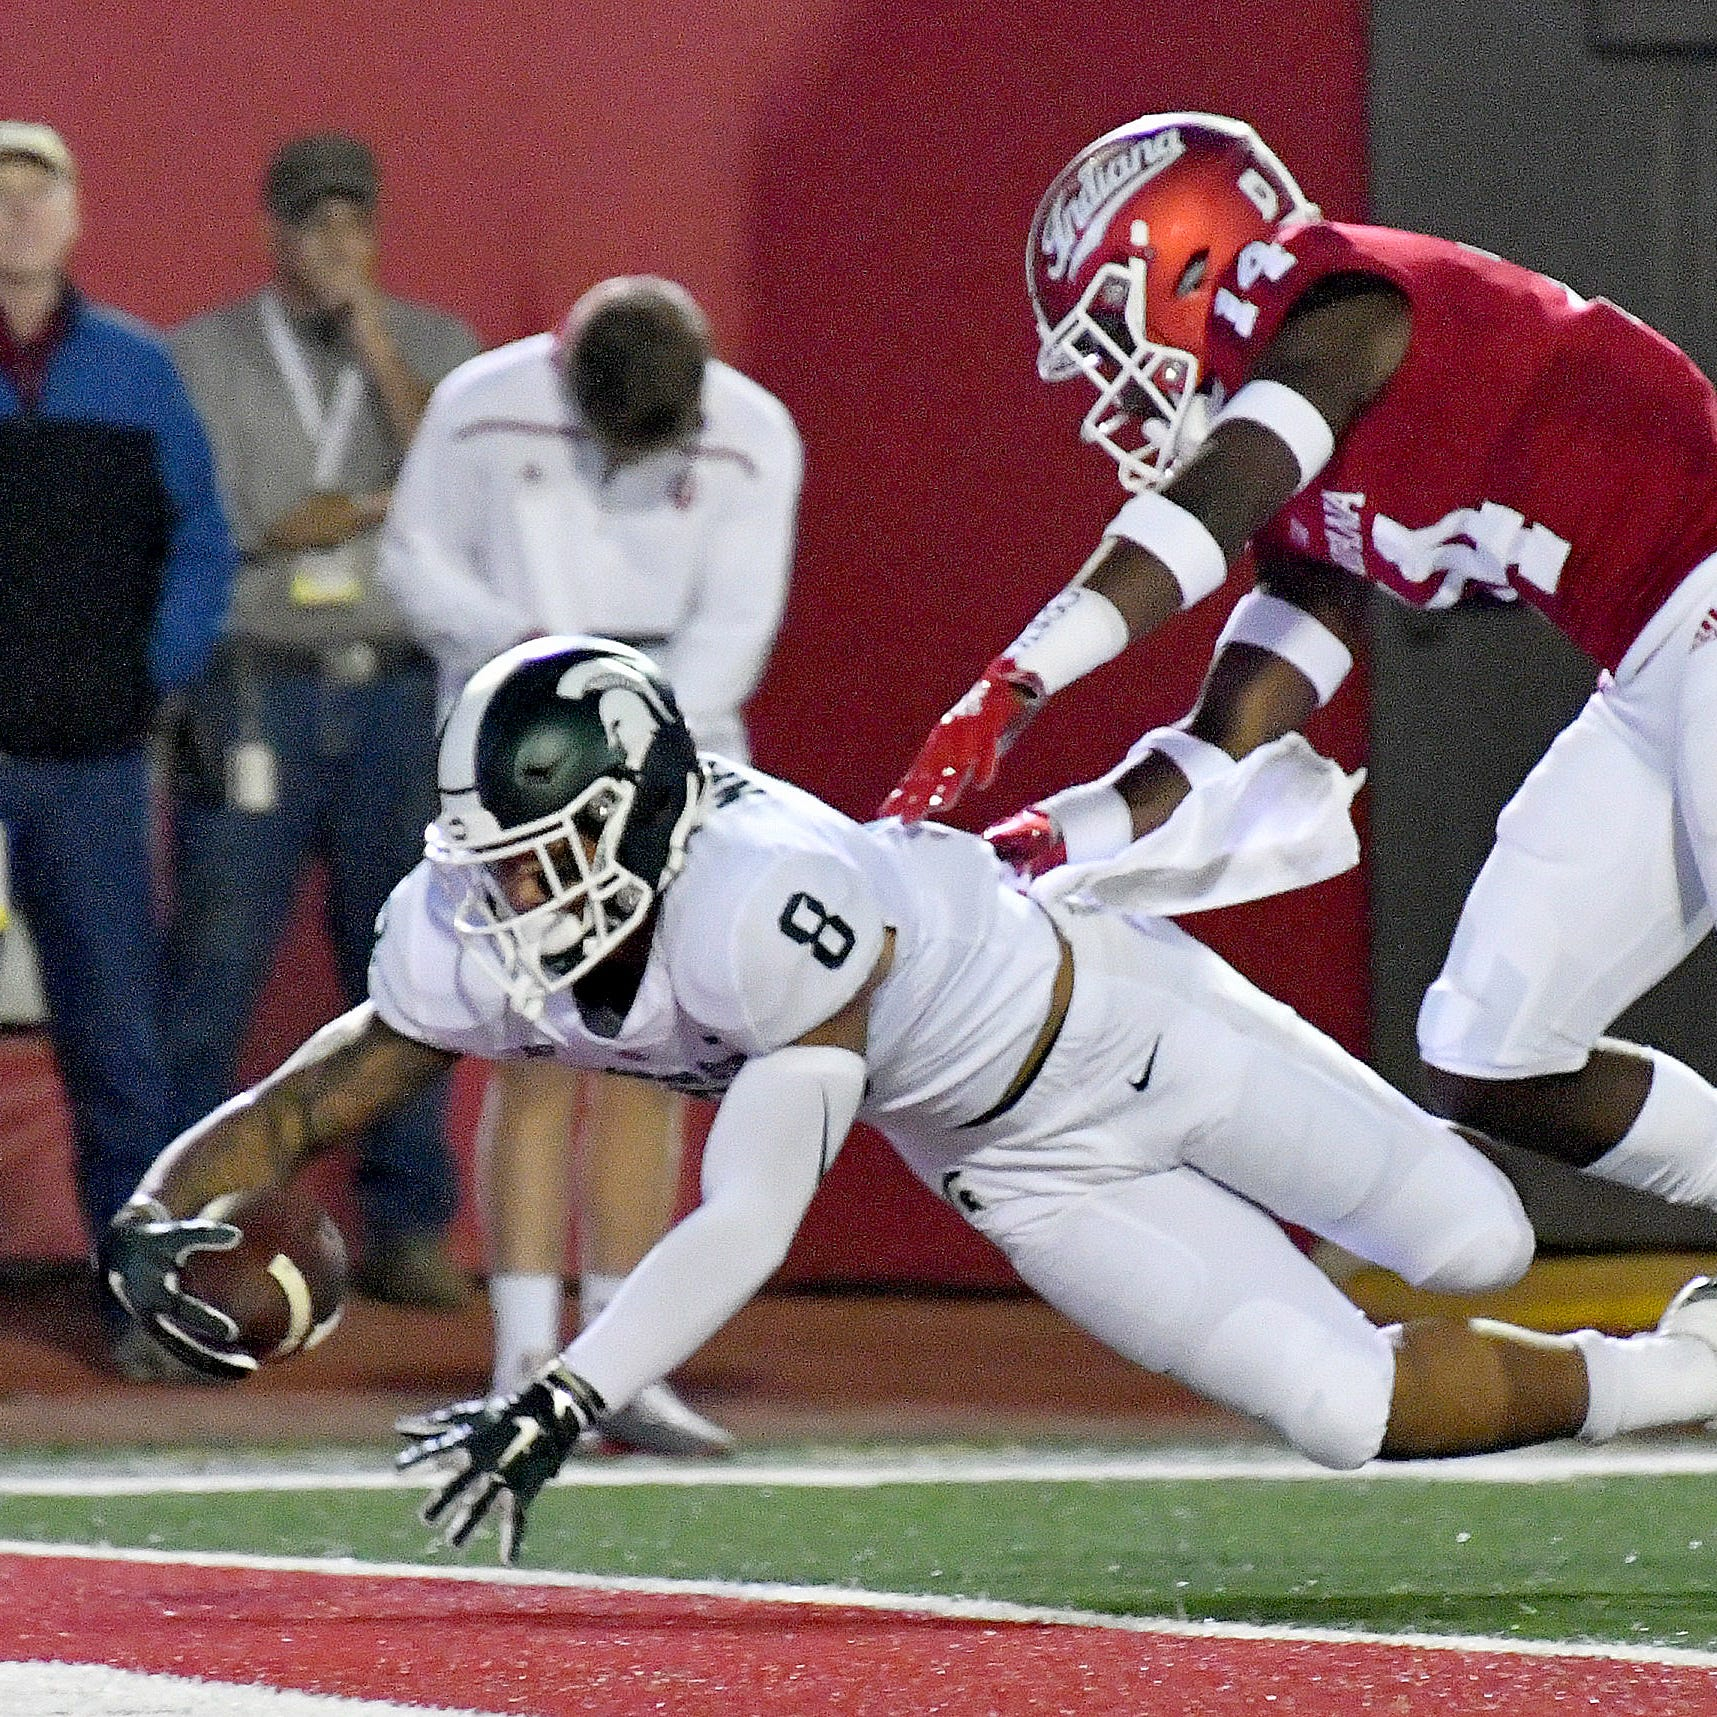 Spartans rises above miscues to win Big Ten opener over Hoosiers